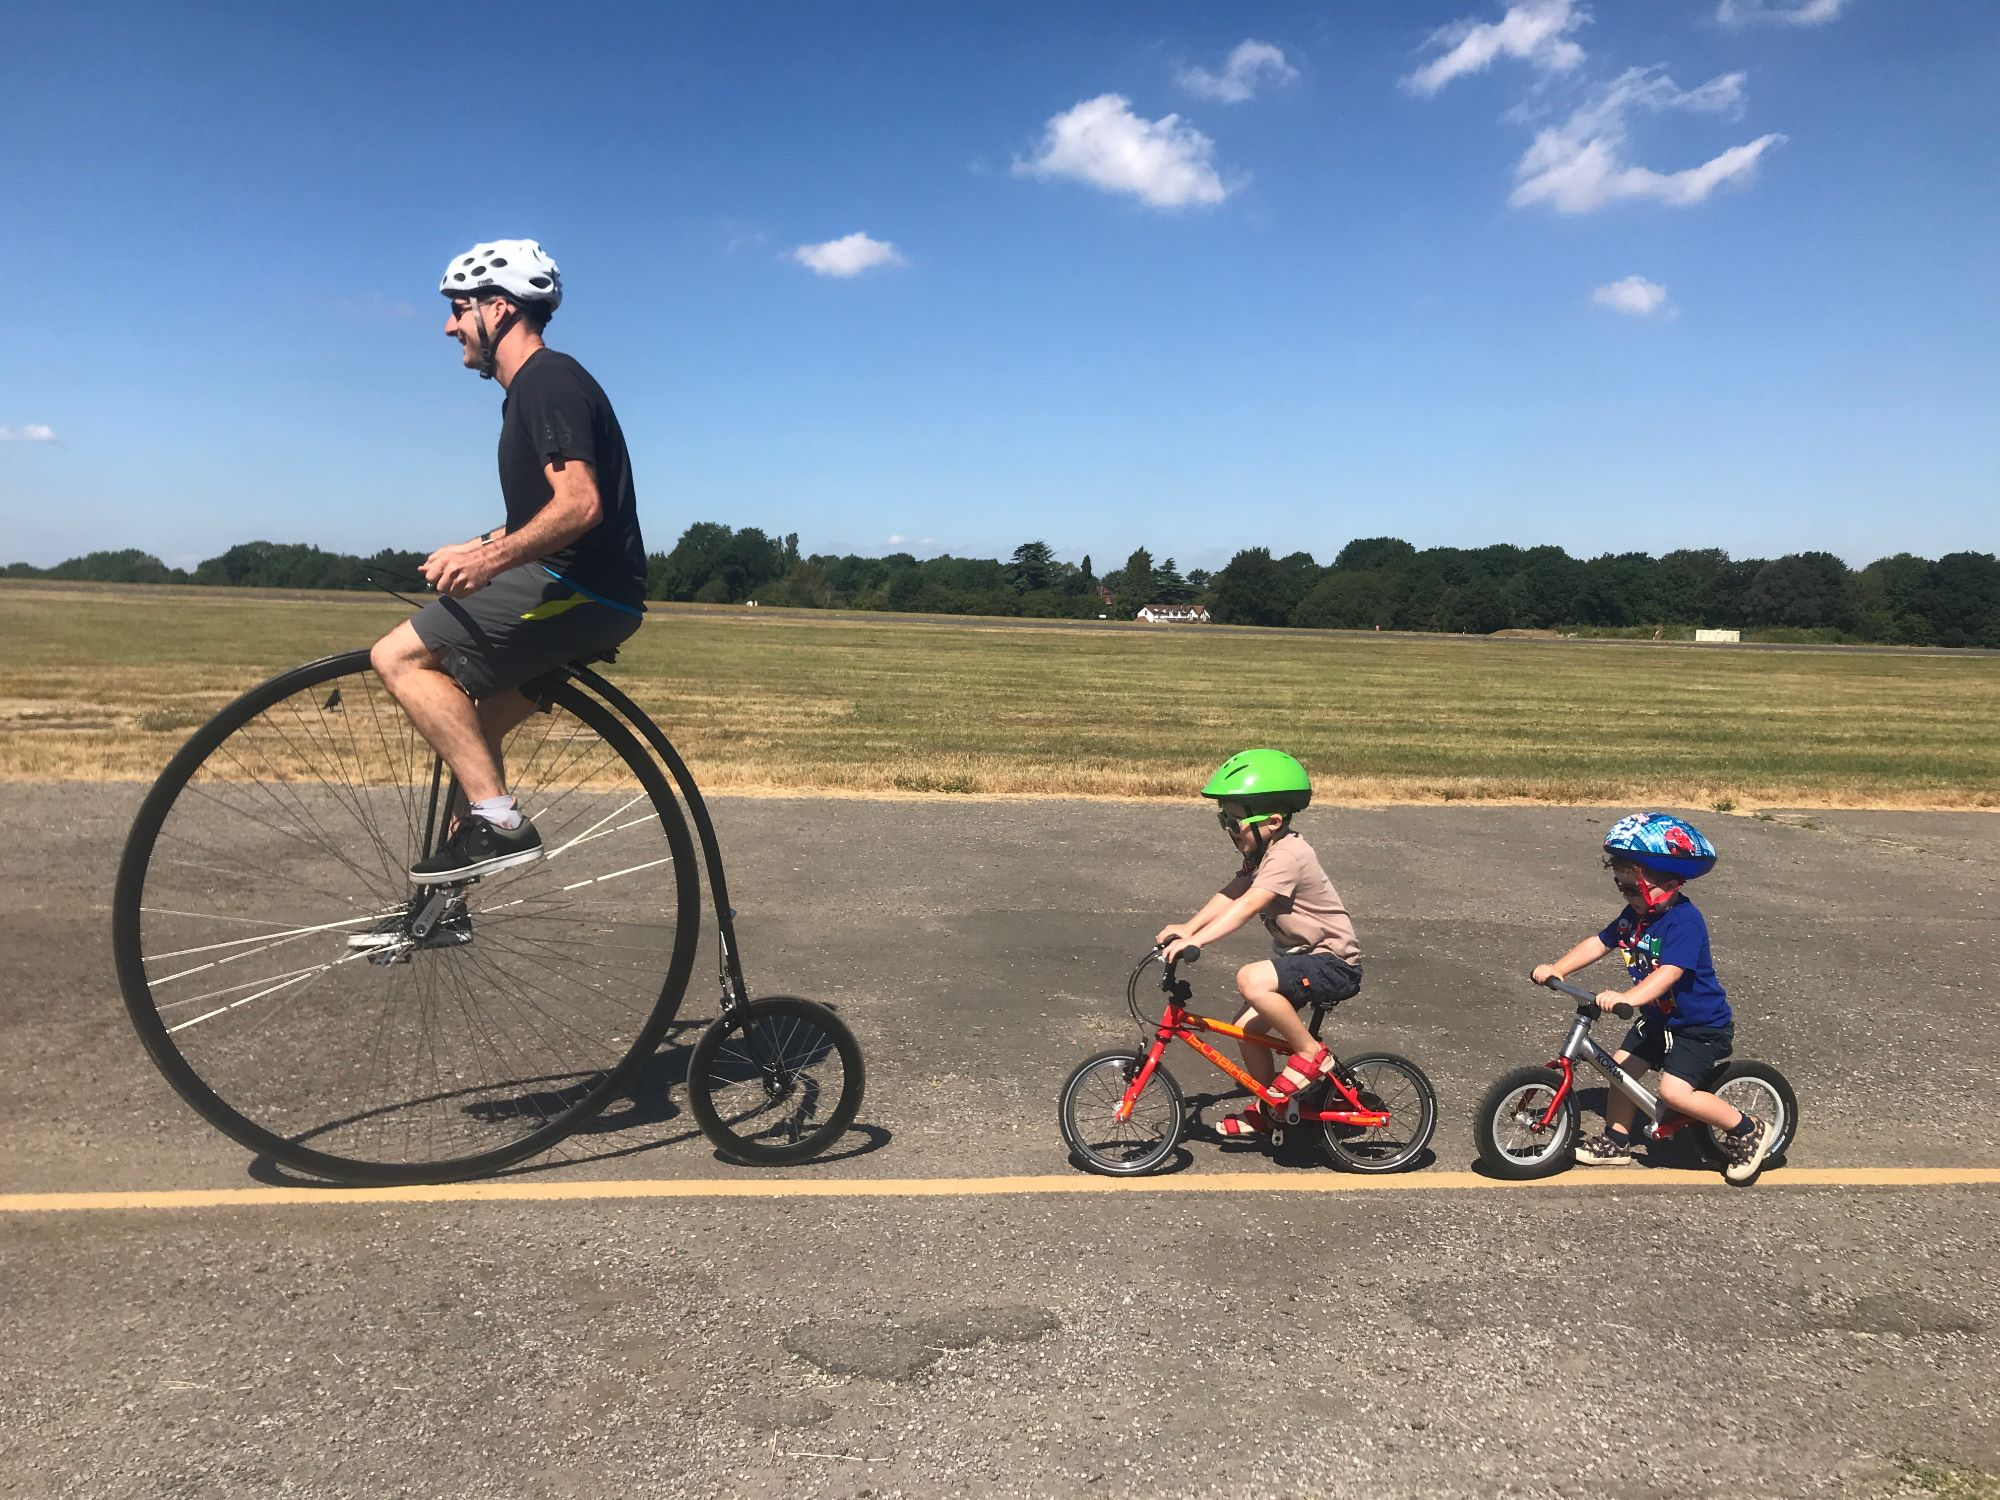 Penny Farthing with the boys on bikes